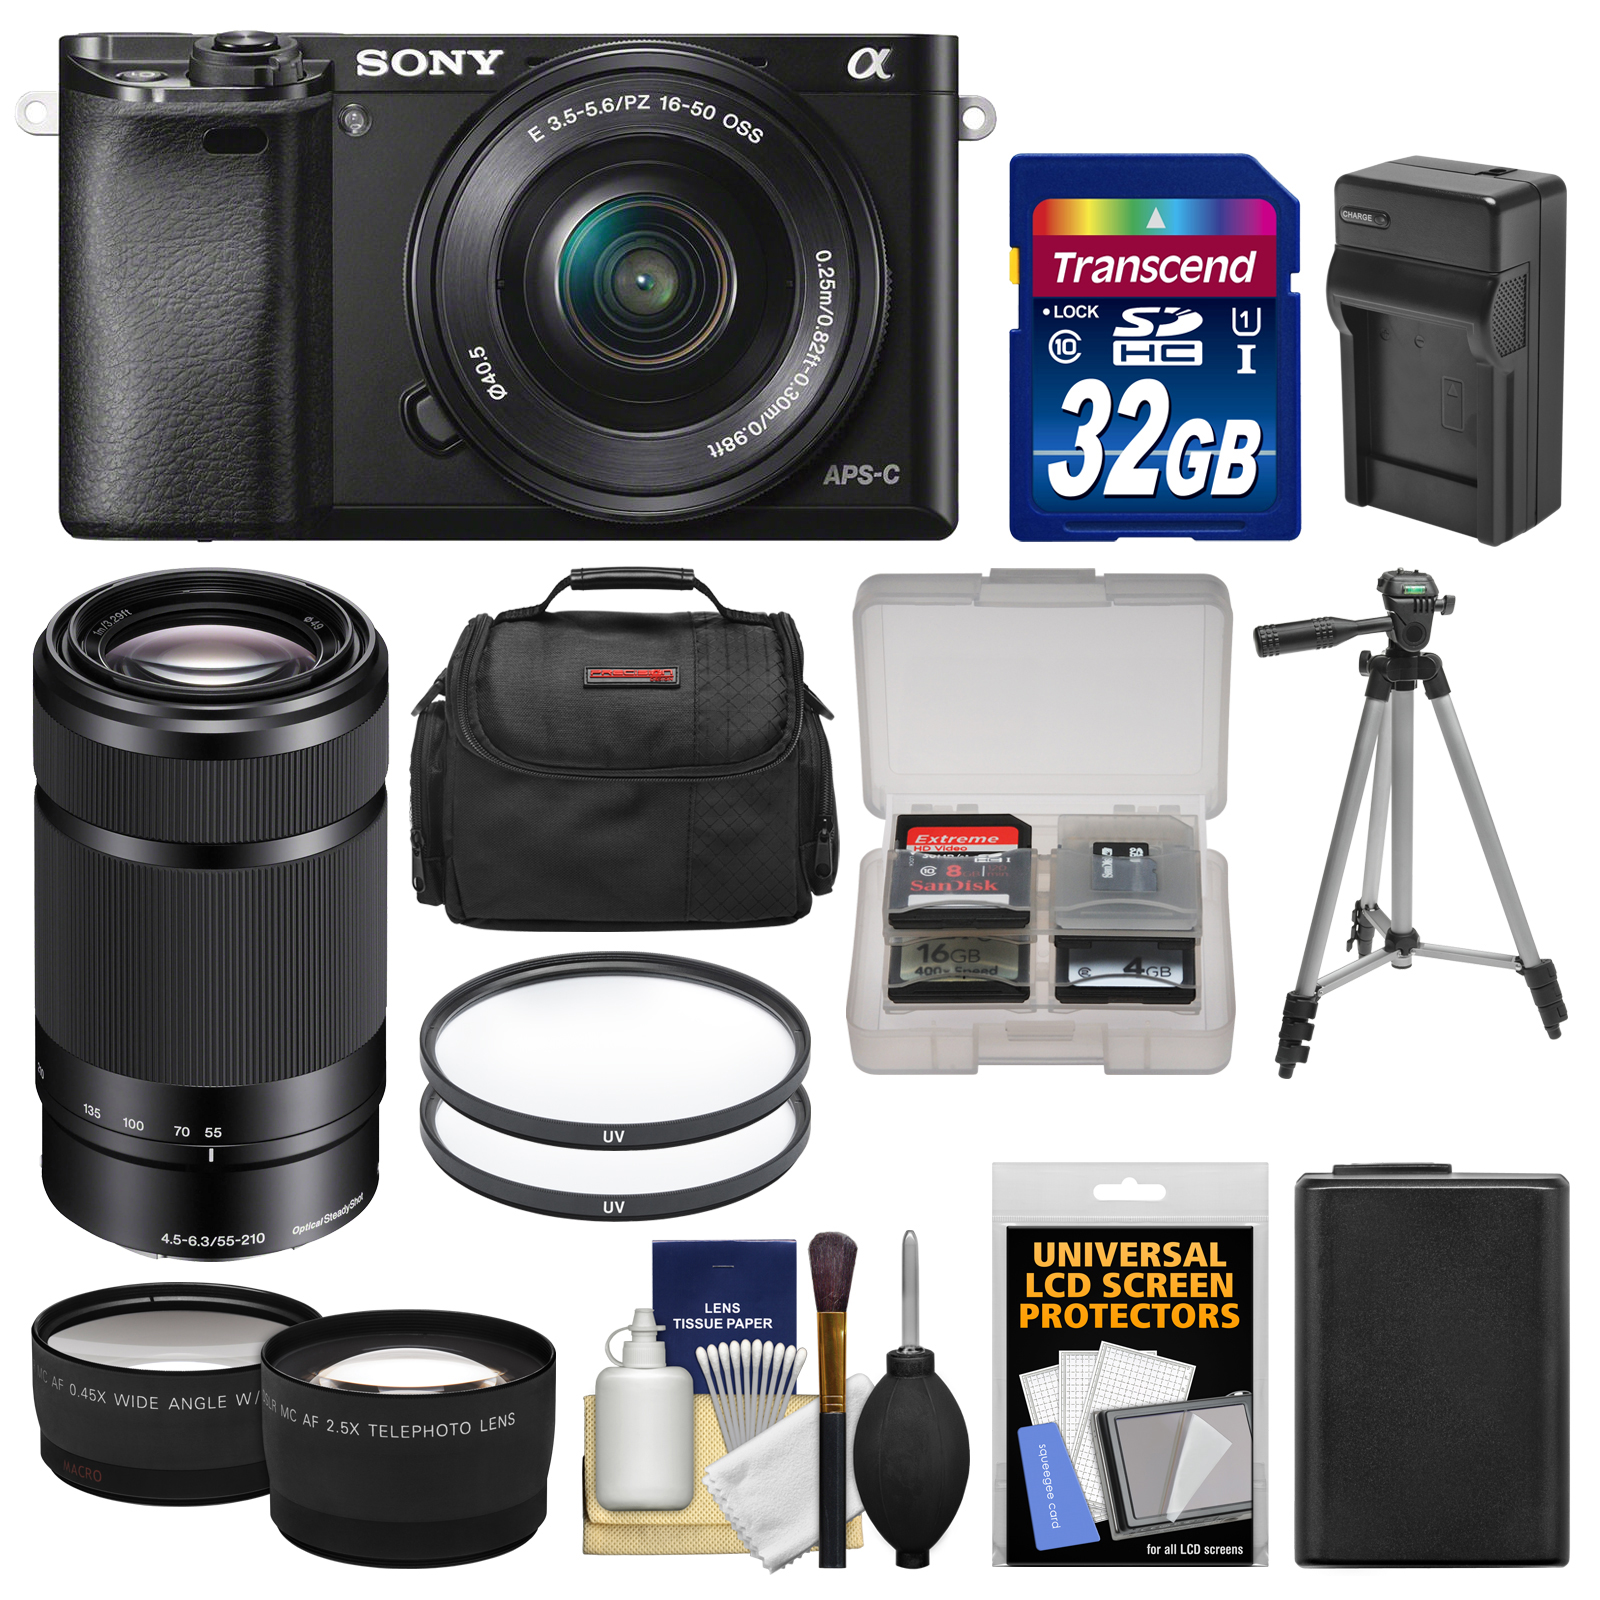 Sony Alpha A6000 Wi-Fi Digital Camera & 16-50mm Lens (White) with 55-210mm Lens + 32GB Card + Case + Battery... by Sony